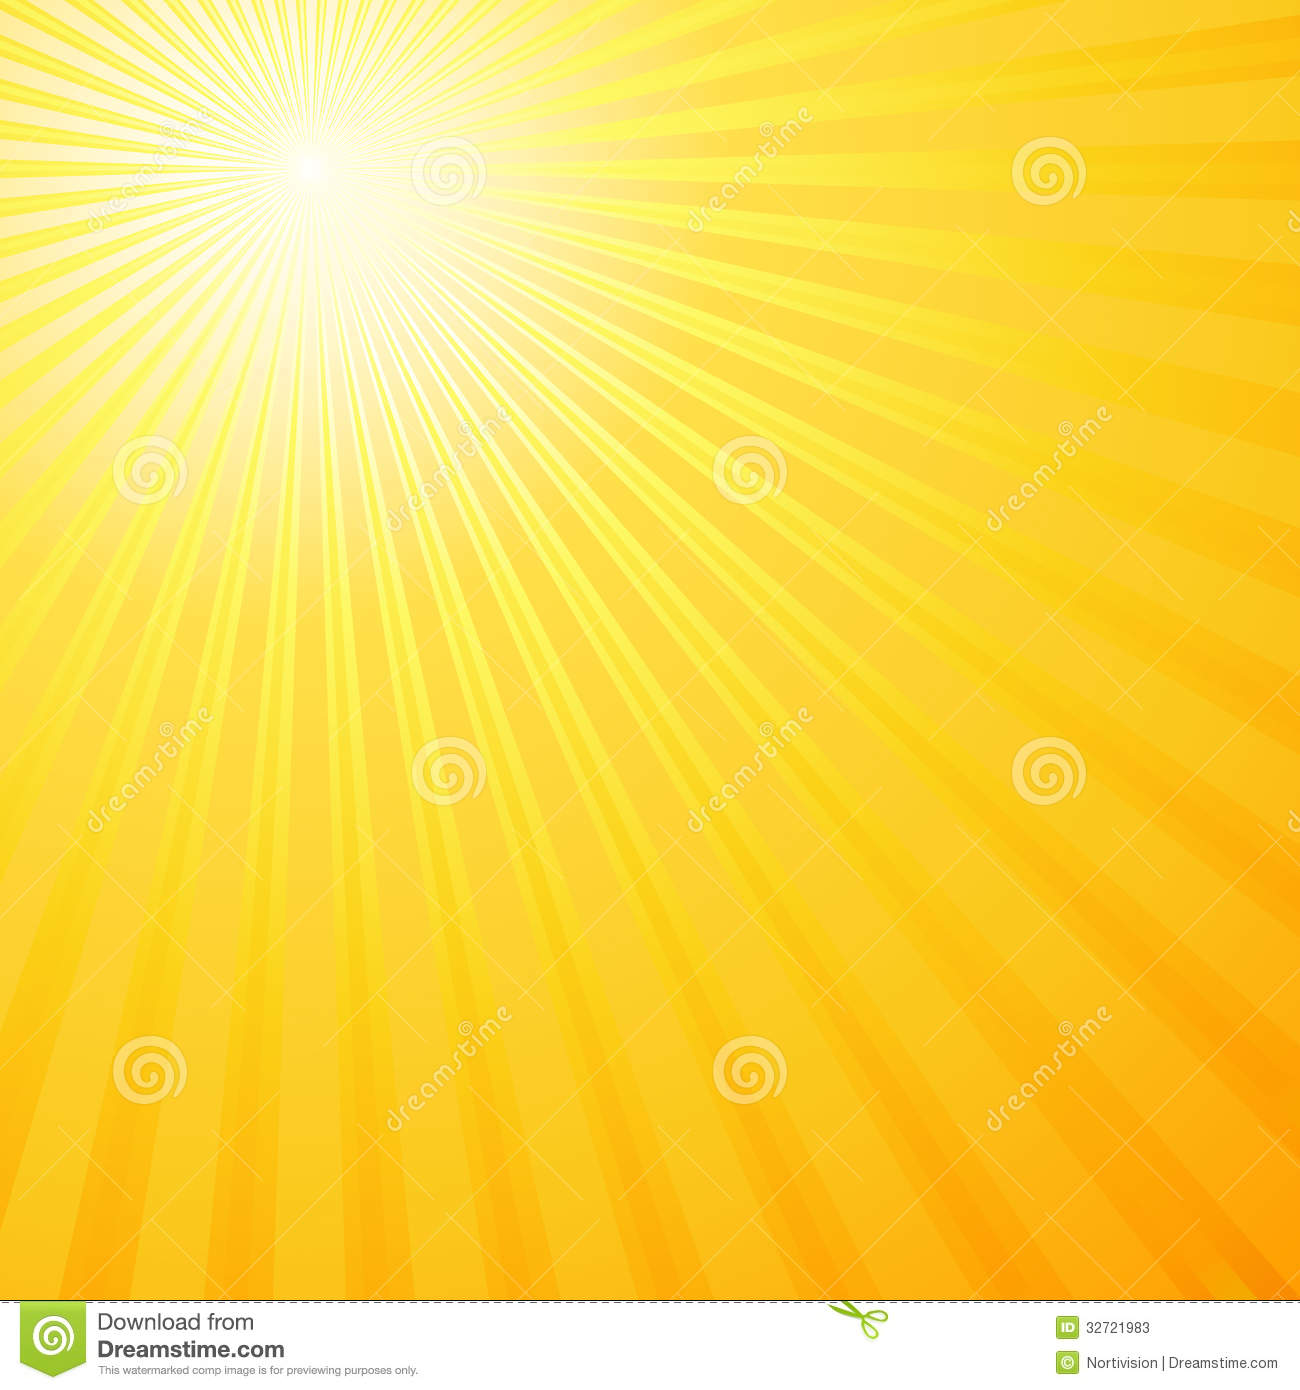 Sun Rays Stock Photos - Image: 32721983